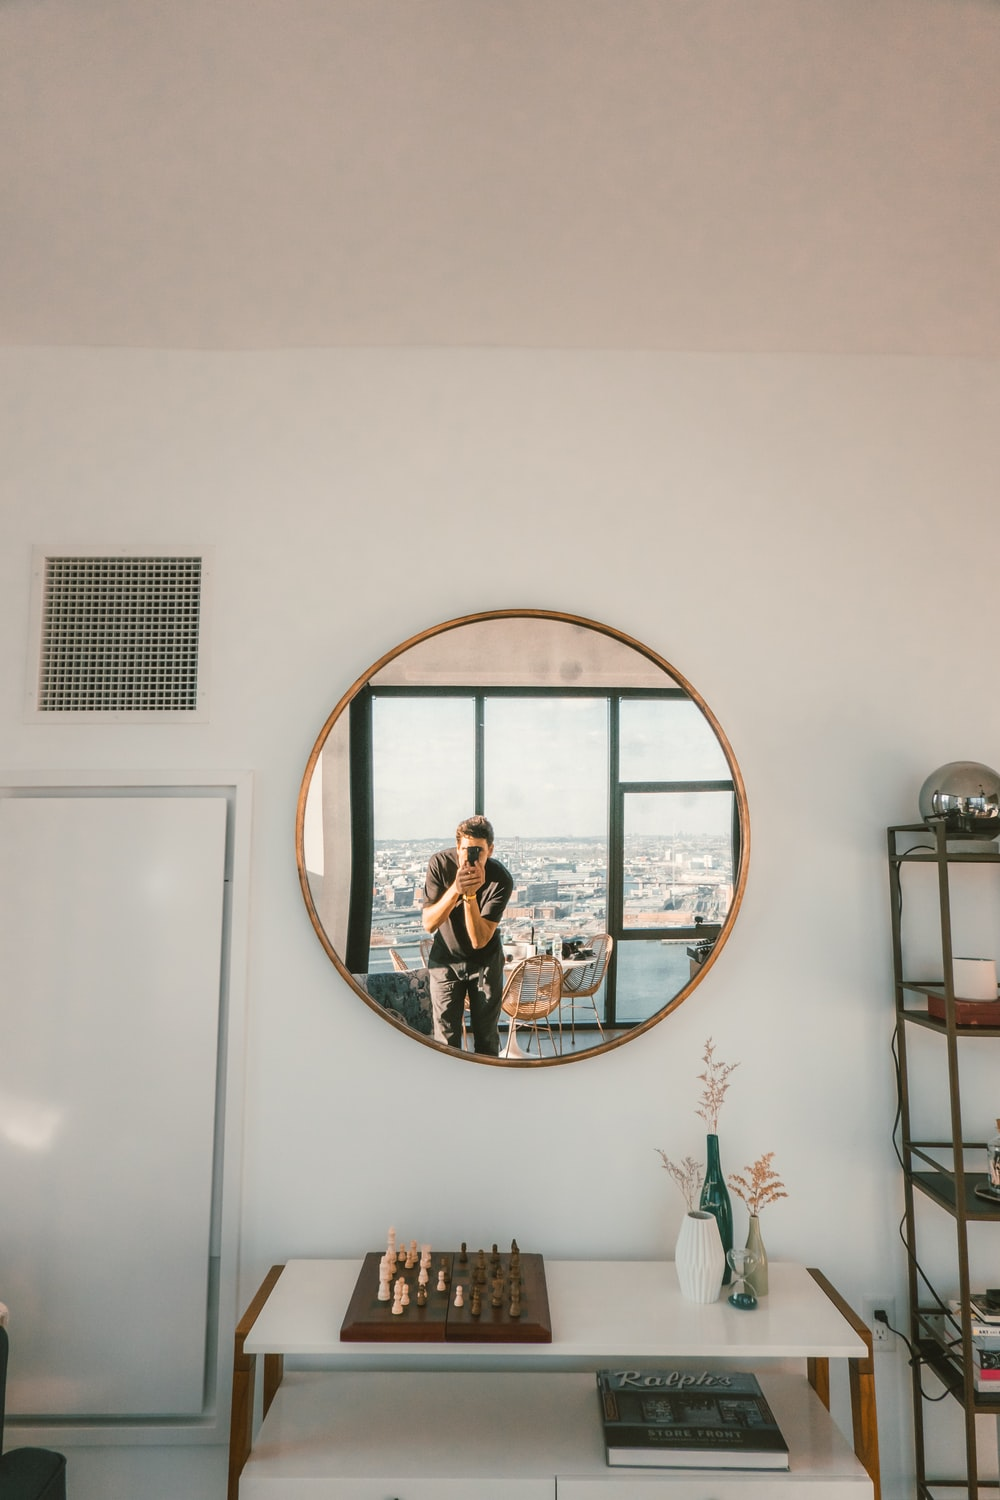 person taking photo of round wall mirror during daytime